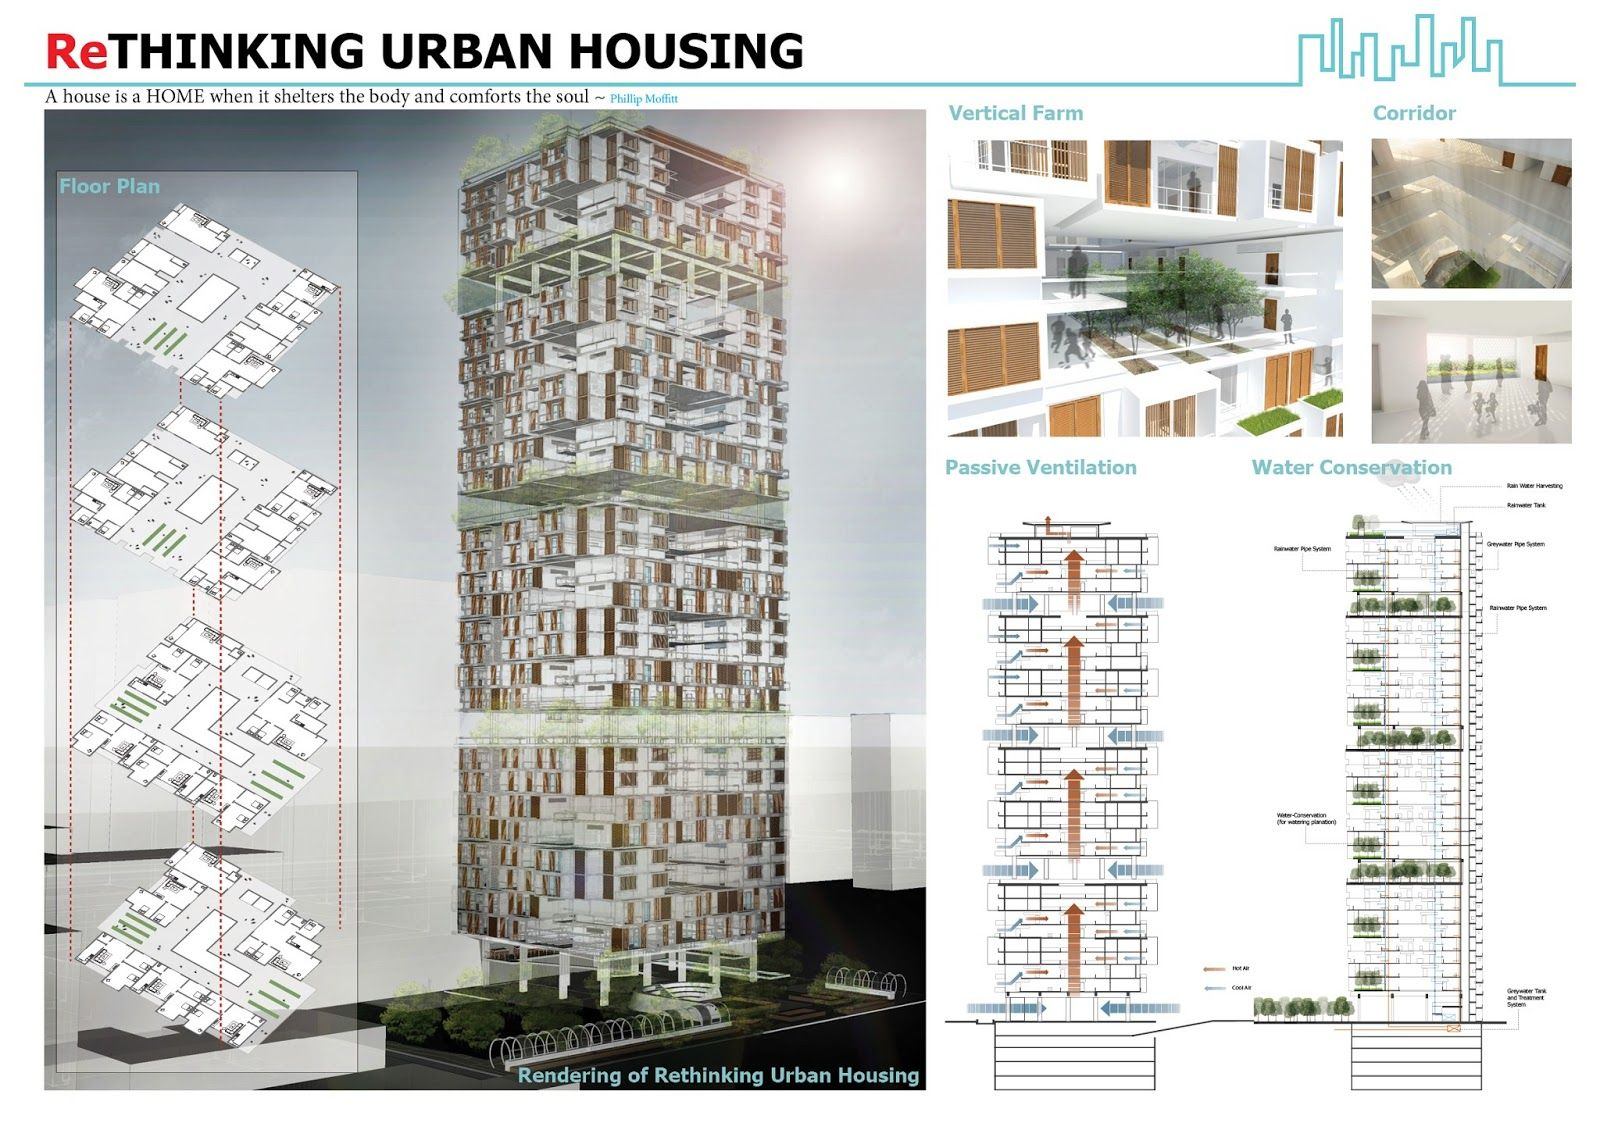 Rethinking urban housing archiprix s e a 2012 architecture for Architectural concepts for apartments pdf